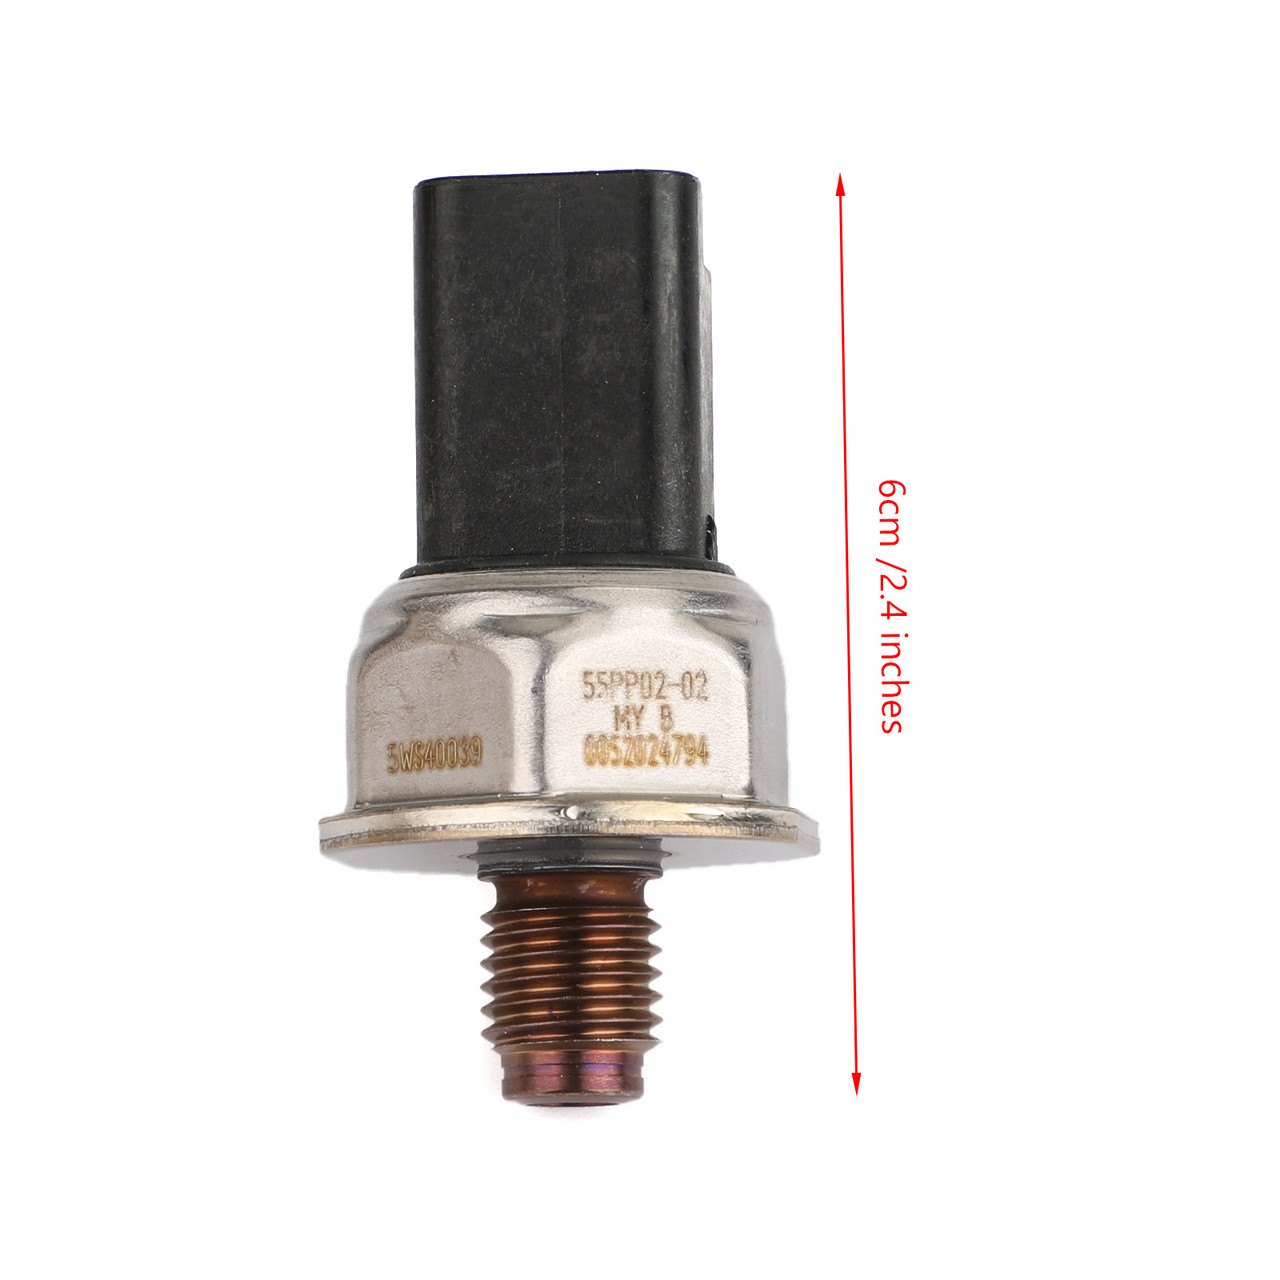 Fuel Rail Pressure Sensor Fits For Ford Oeugeot Citroen Volvo 2.0